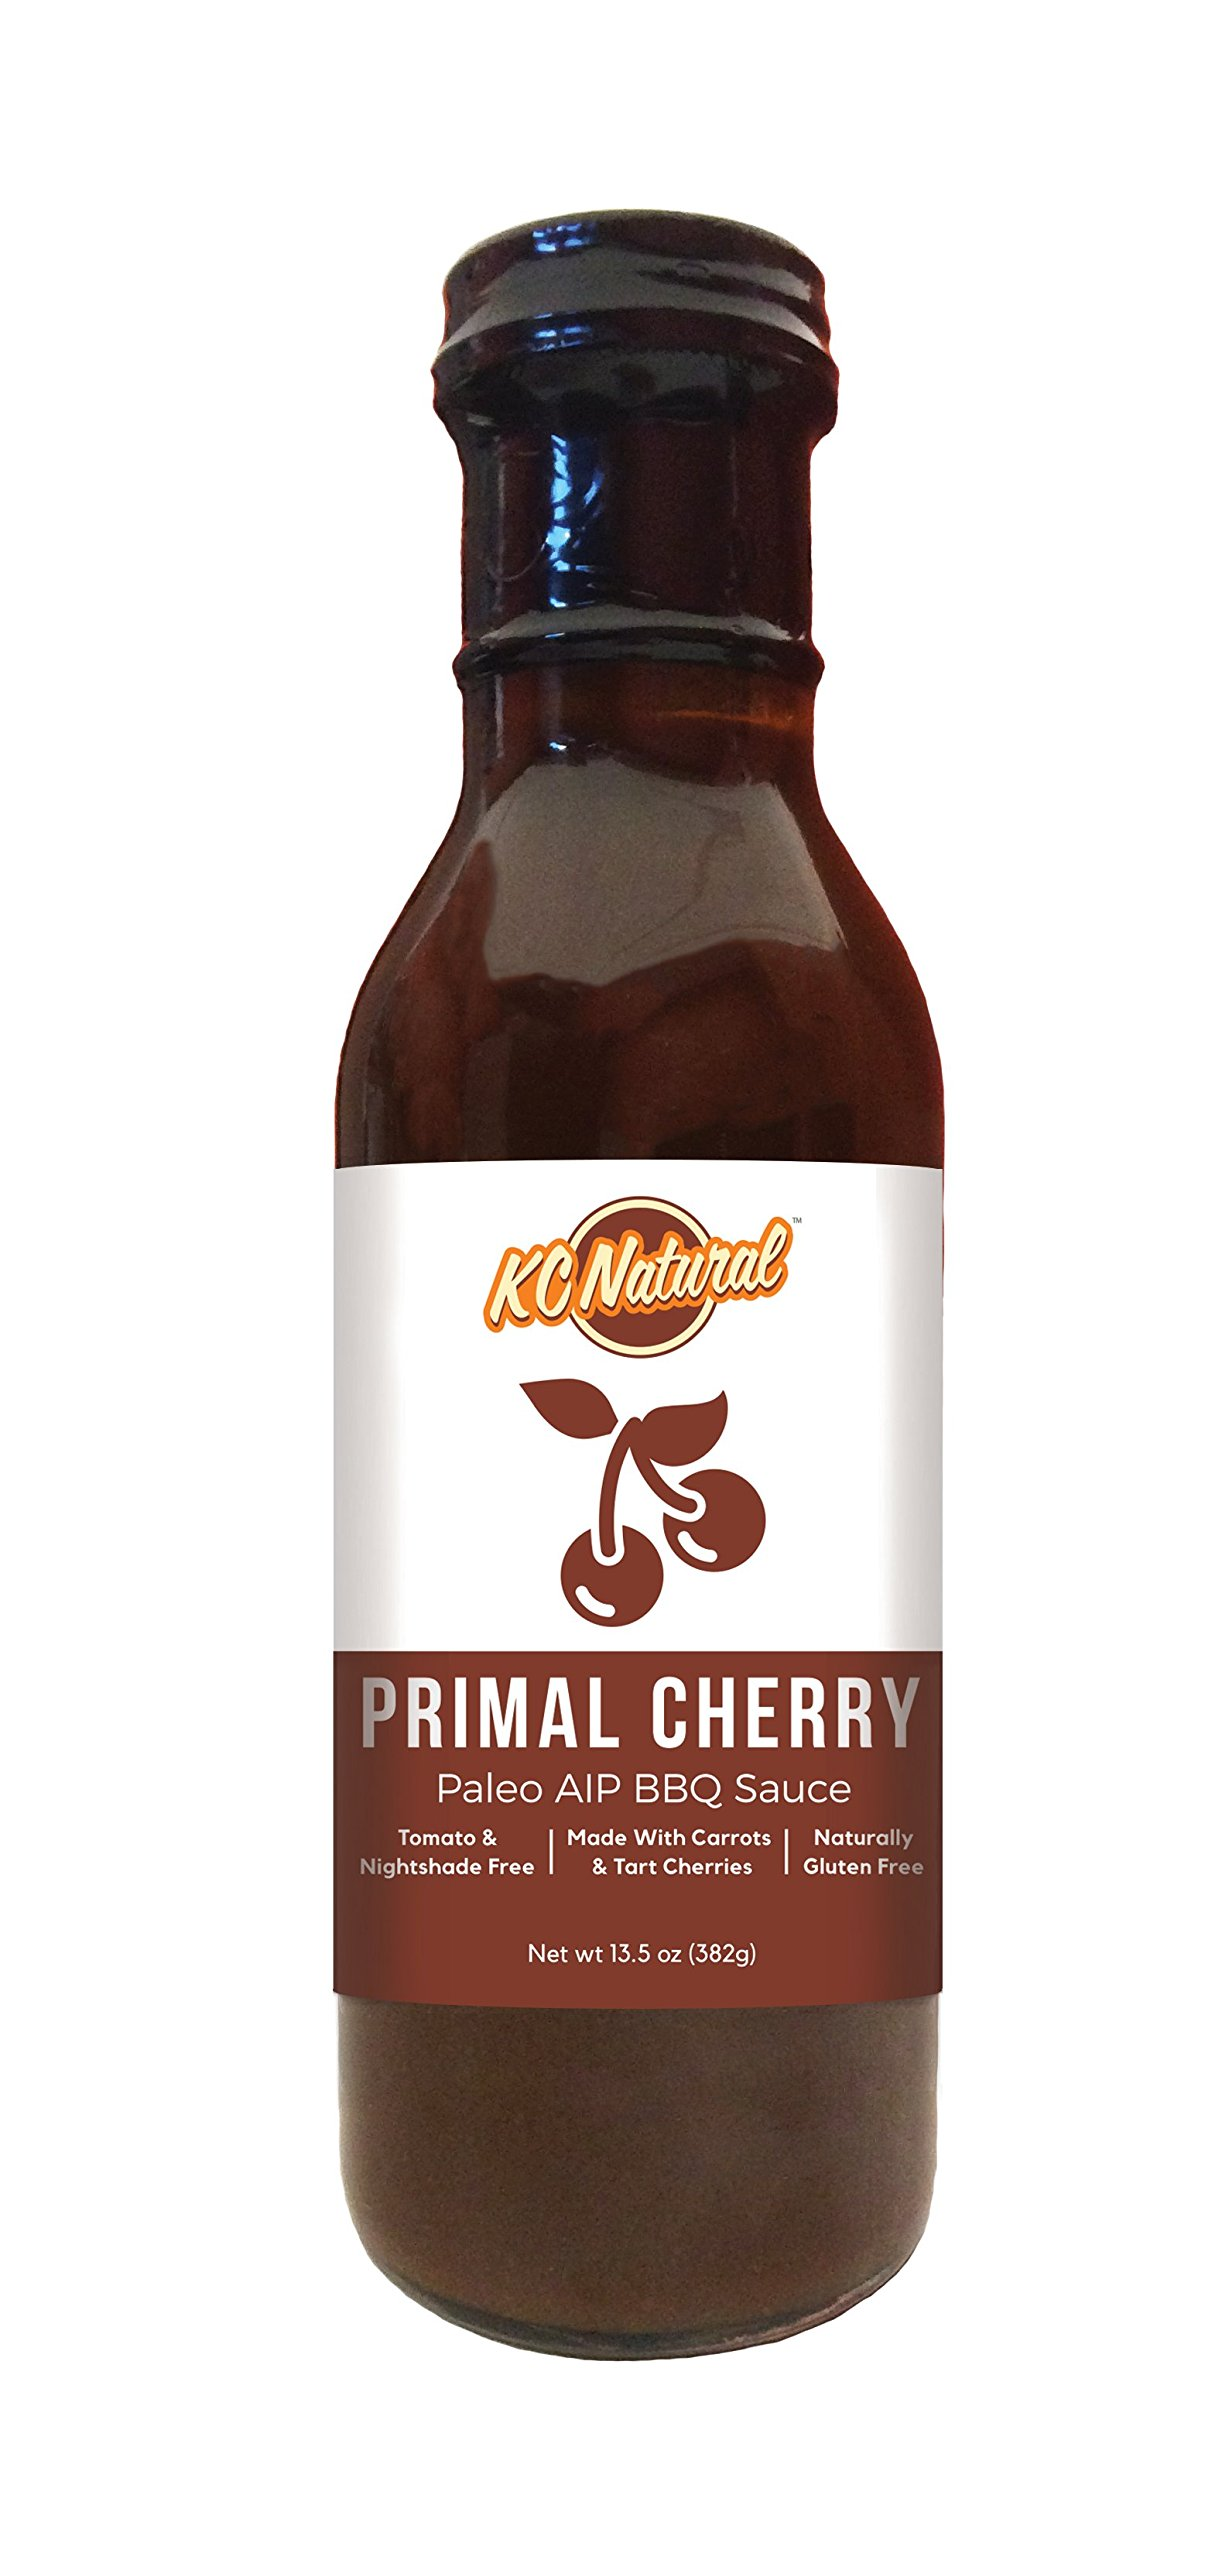 KC Natural - Paleo AIP Barbecue Sauce, Primal Cherry, 14 oz (1 pack)